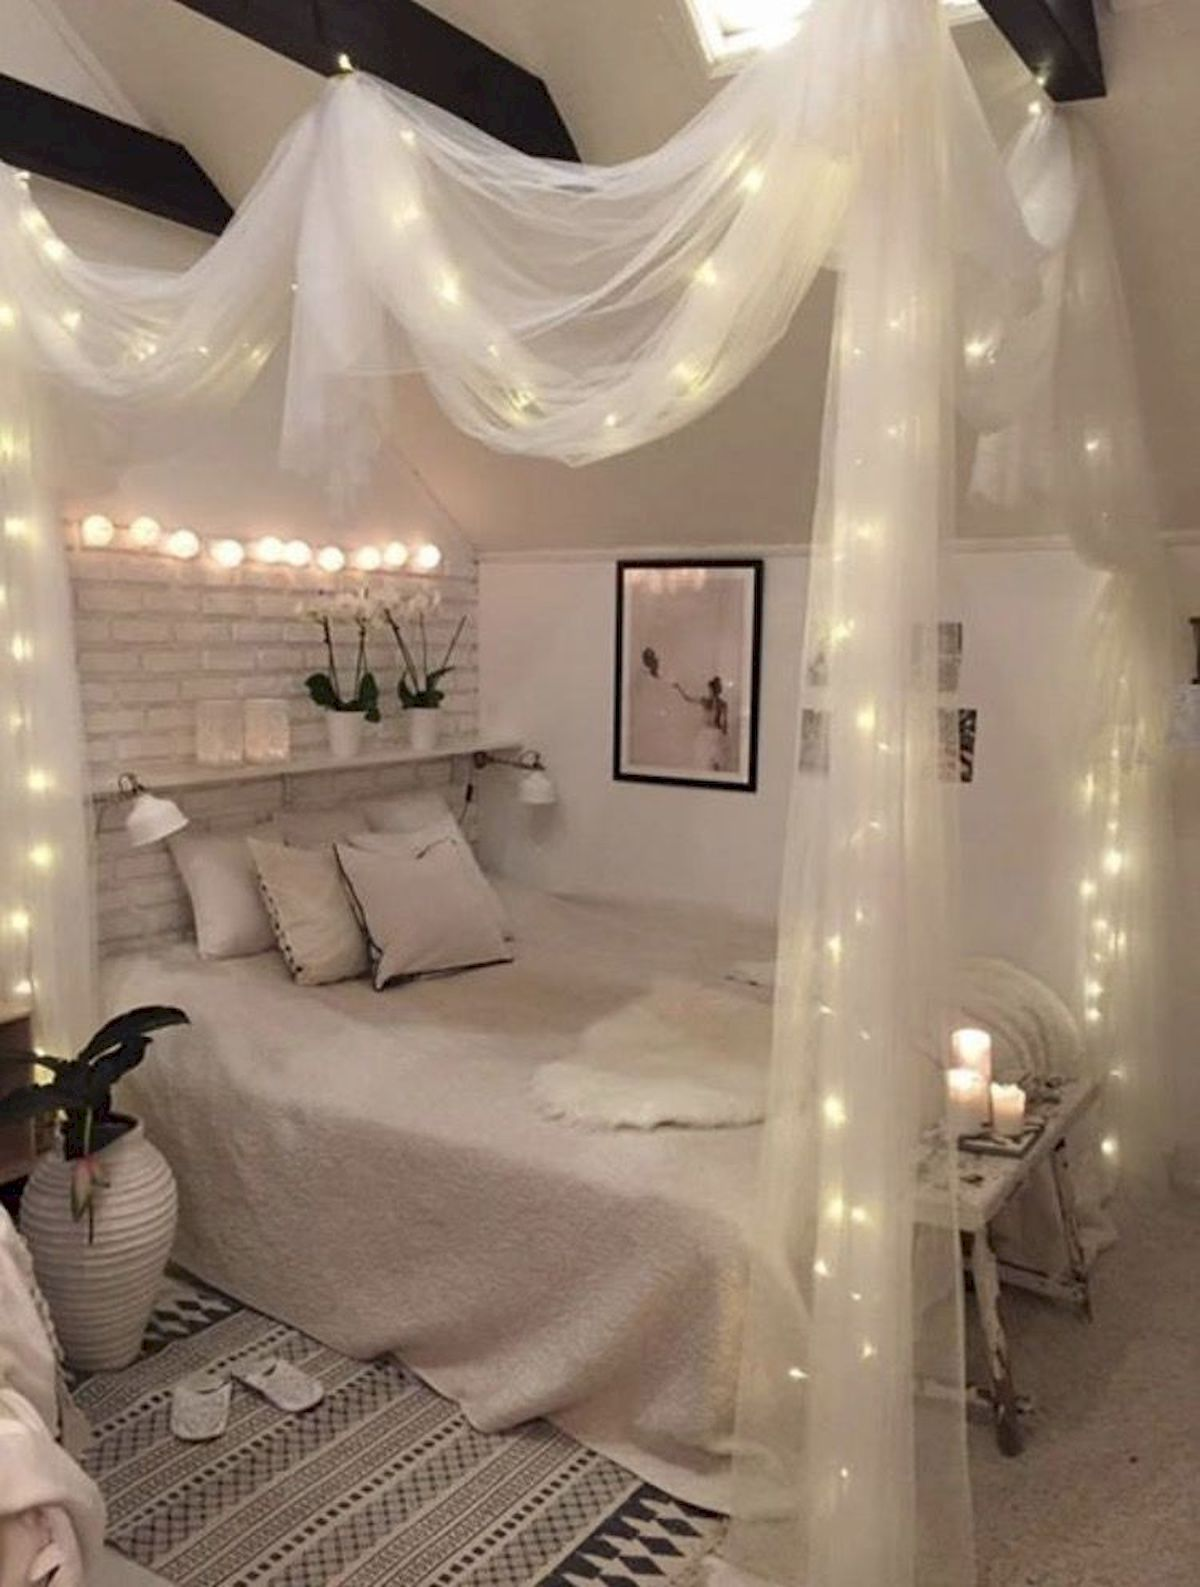 Cozy Dreamy Apartment Bedroom Decoration And Organized Bedroomideas Apartmenbedroomideas Apar Bedroom Design Small Room Bedroom Modern Master Bedroom Design